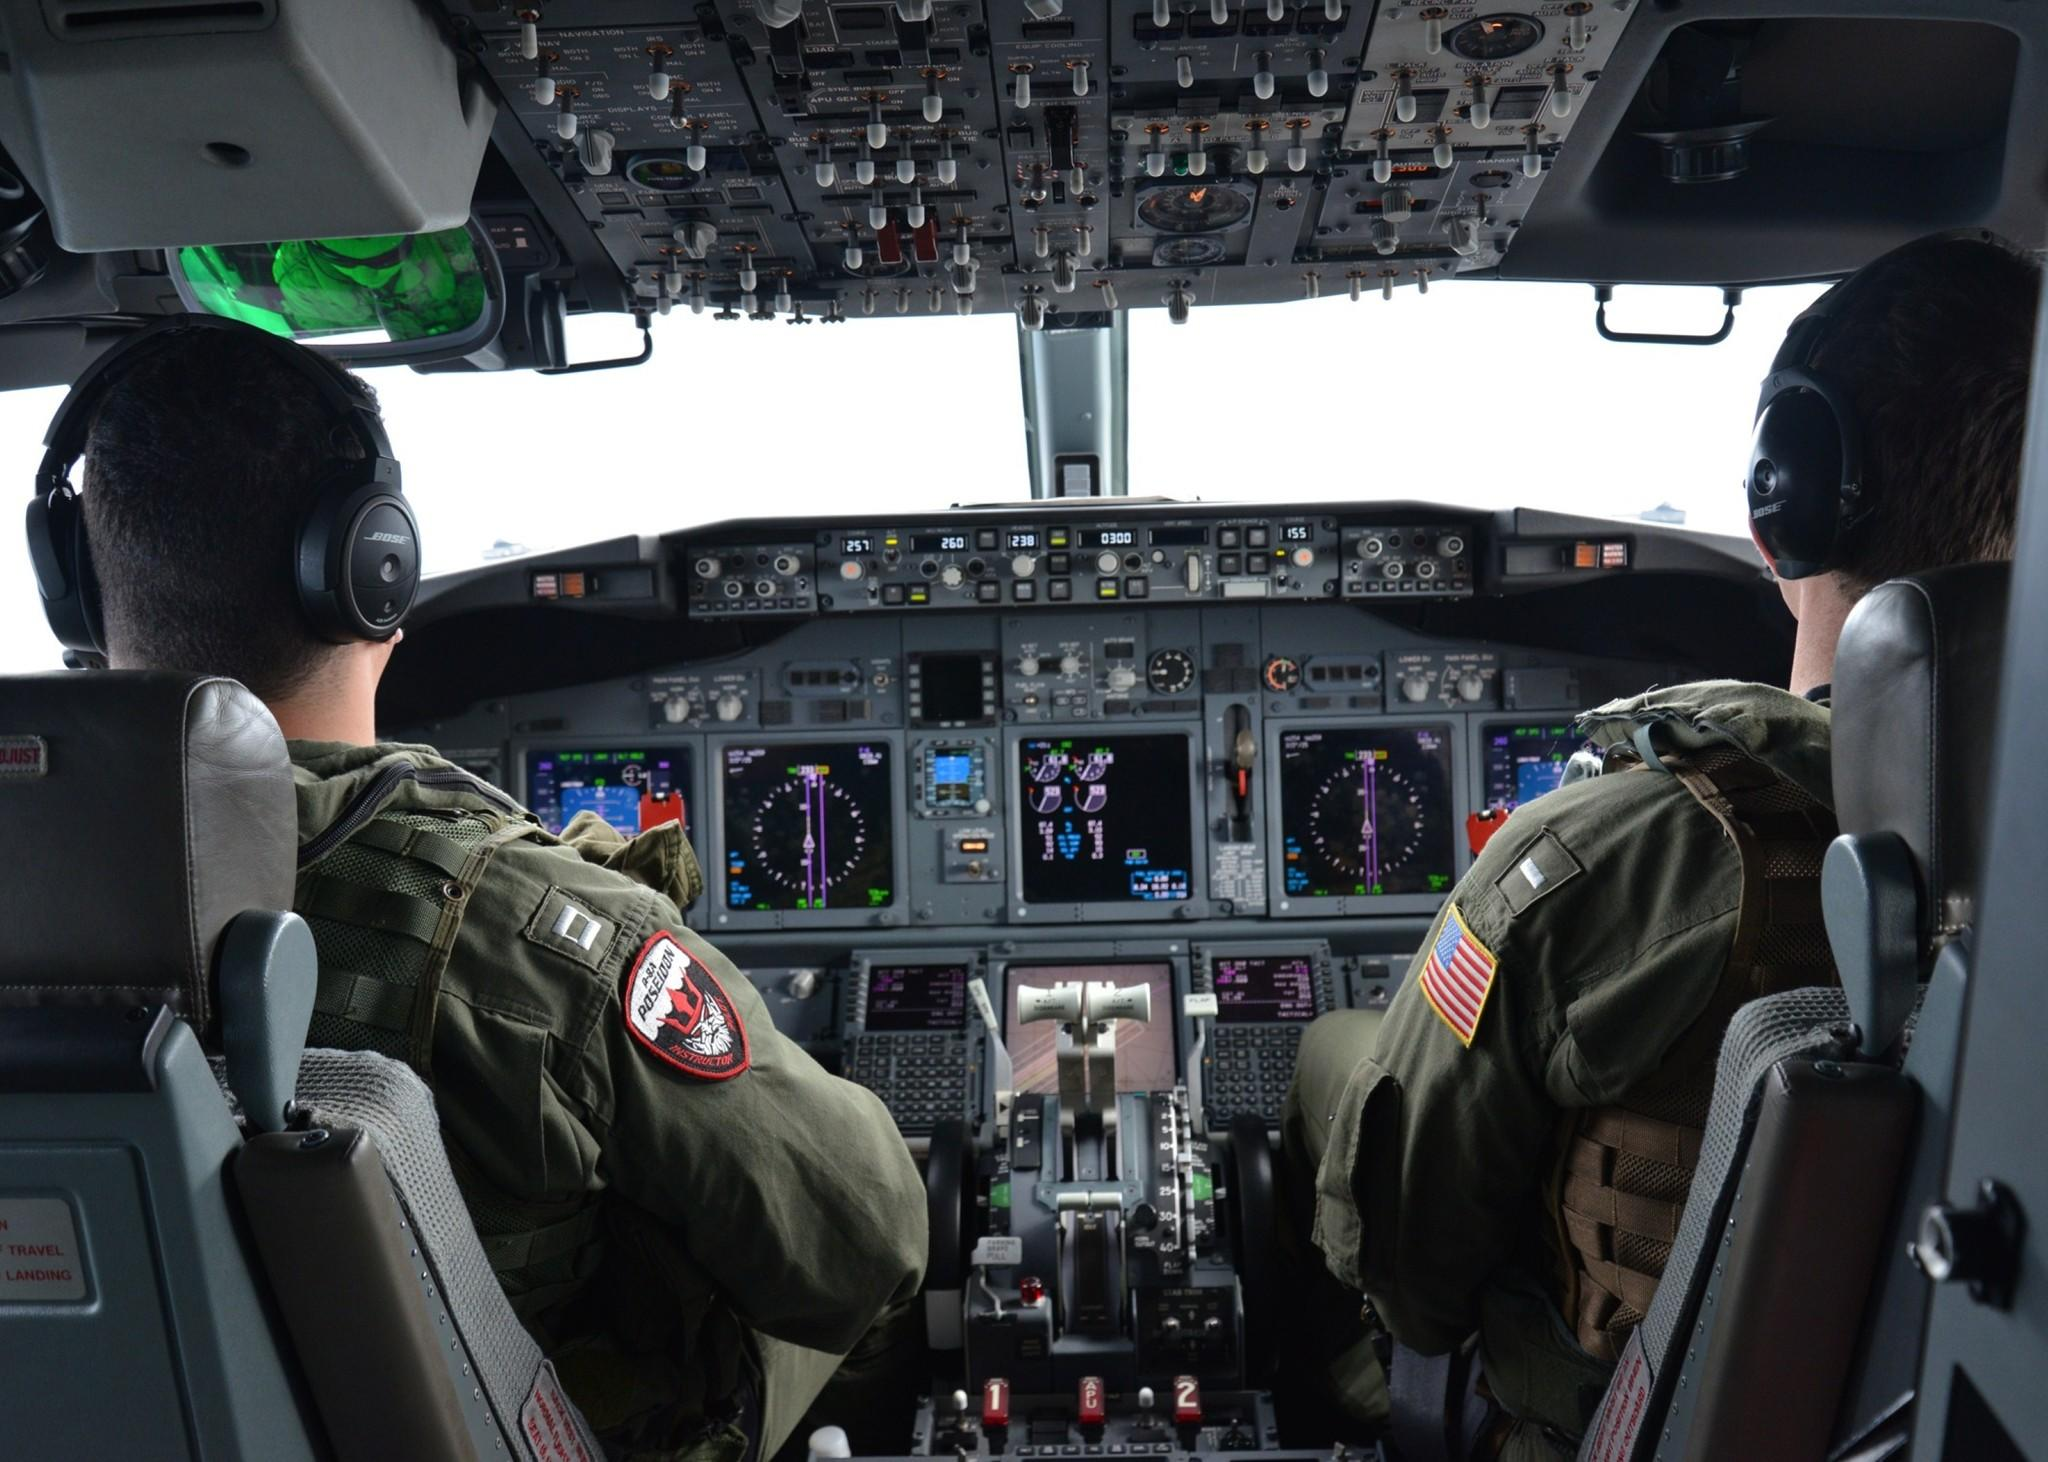 Lt. Clayton Hunt, left, and Lt. j.g. Nicholas Horton, U.S. naval aviators assigned to Patrol Squadron (VP) 16, pilot a P-8A Poseidon over the Indian Ocean during a mission to assist in the hunt for Malaysia Airlines Flight 370.